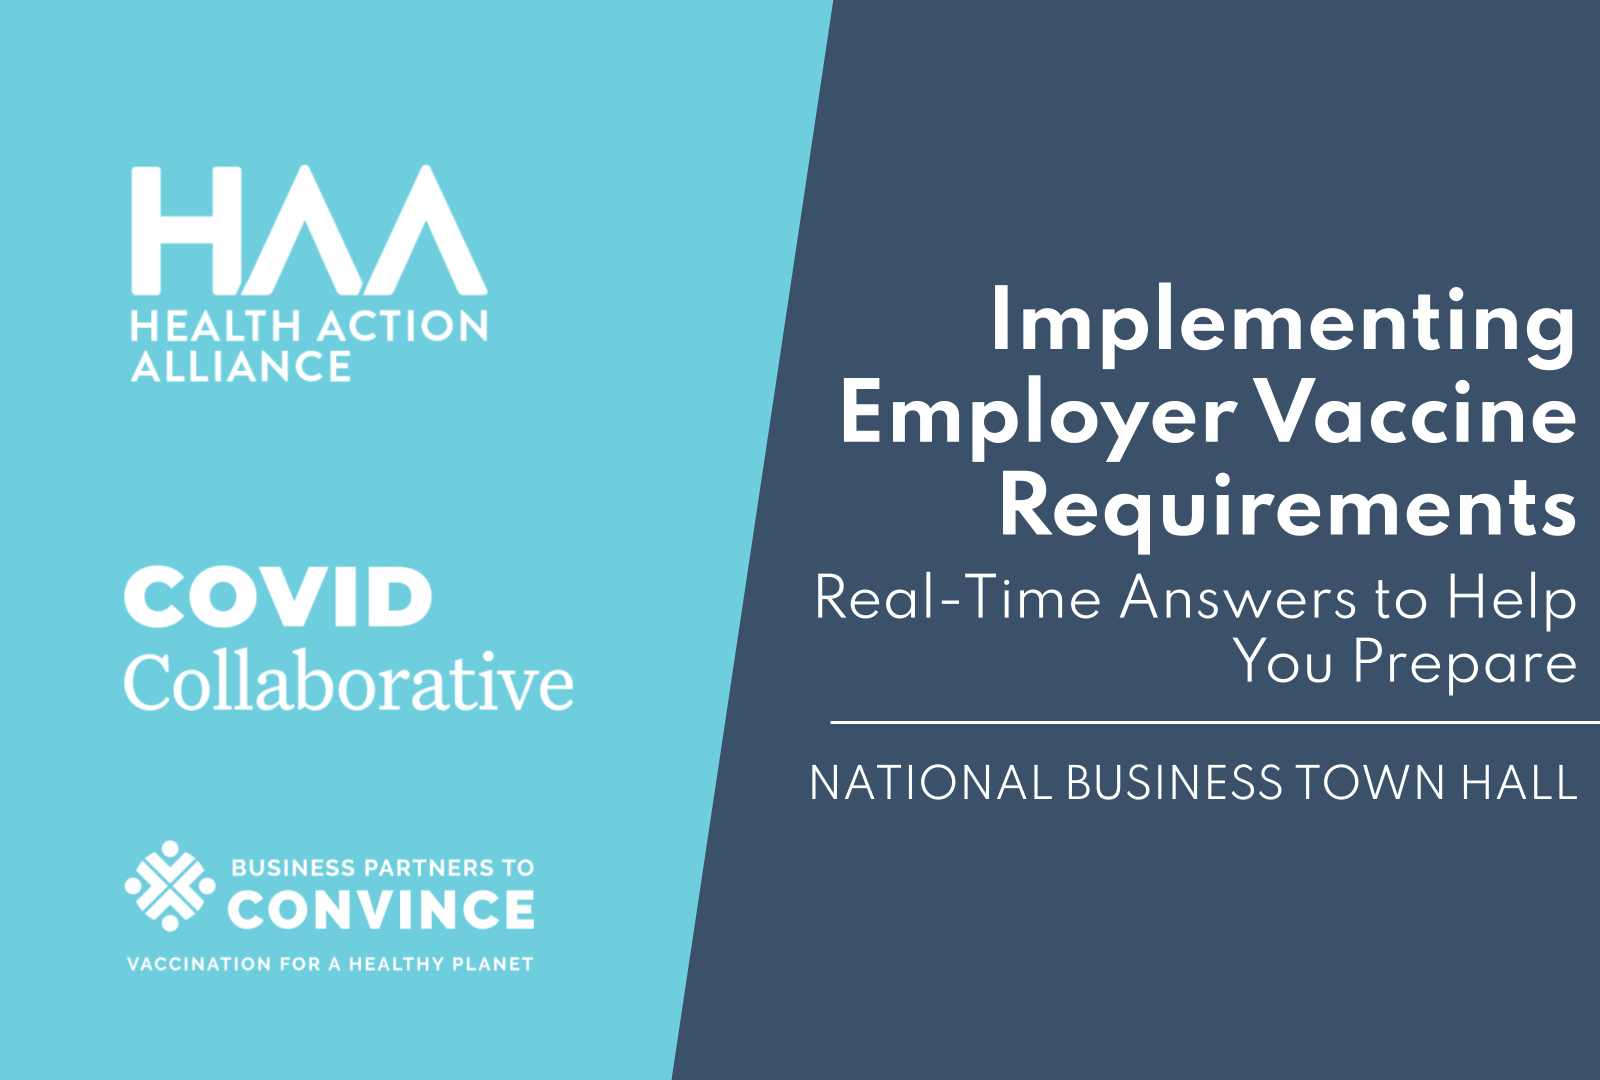 National Business Town Hall: Implementing Employer Vaccine Requirements